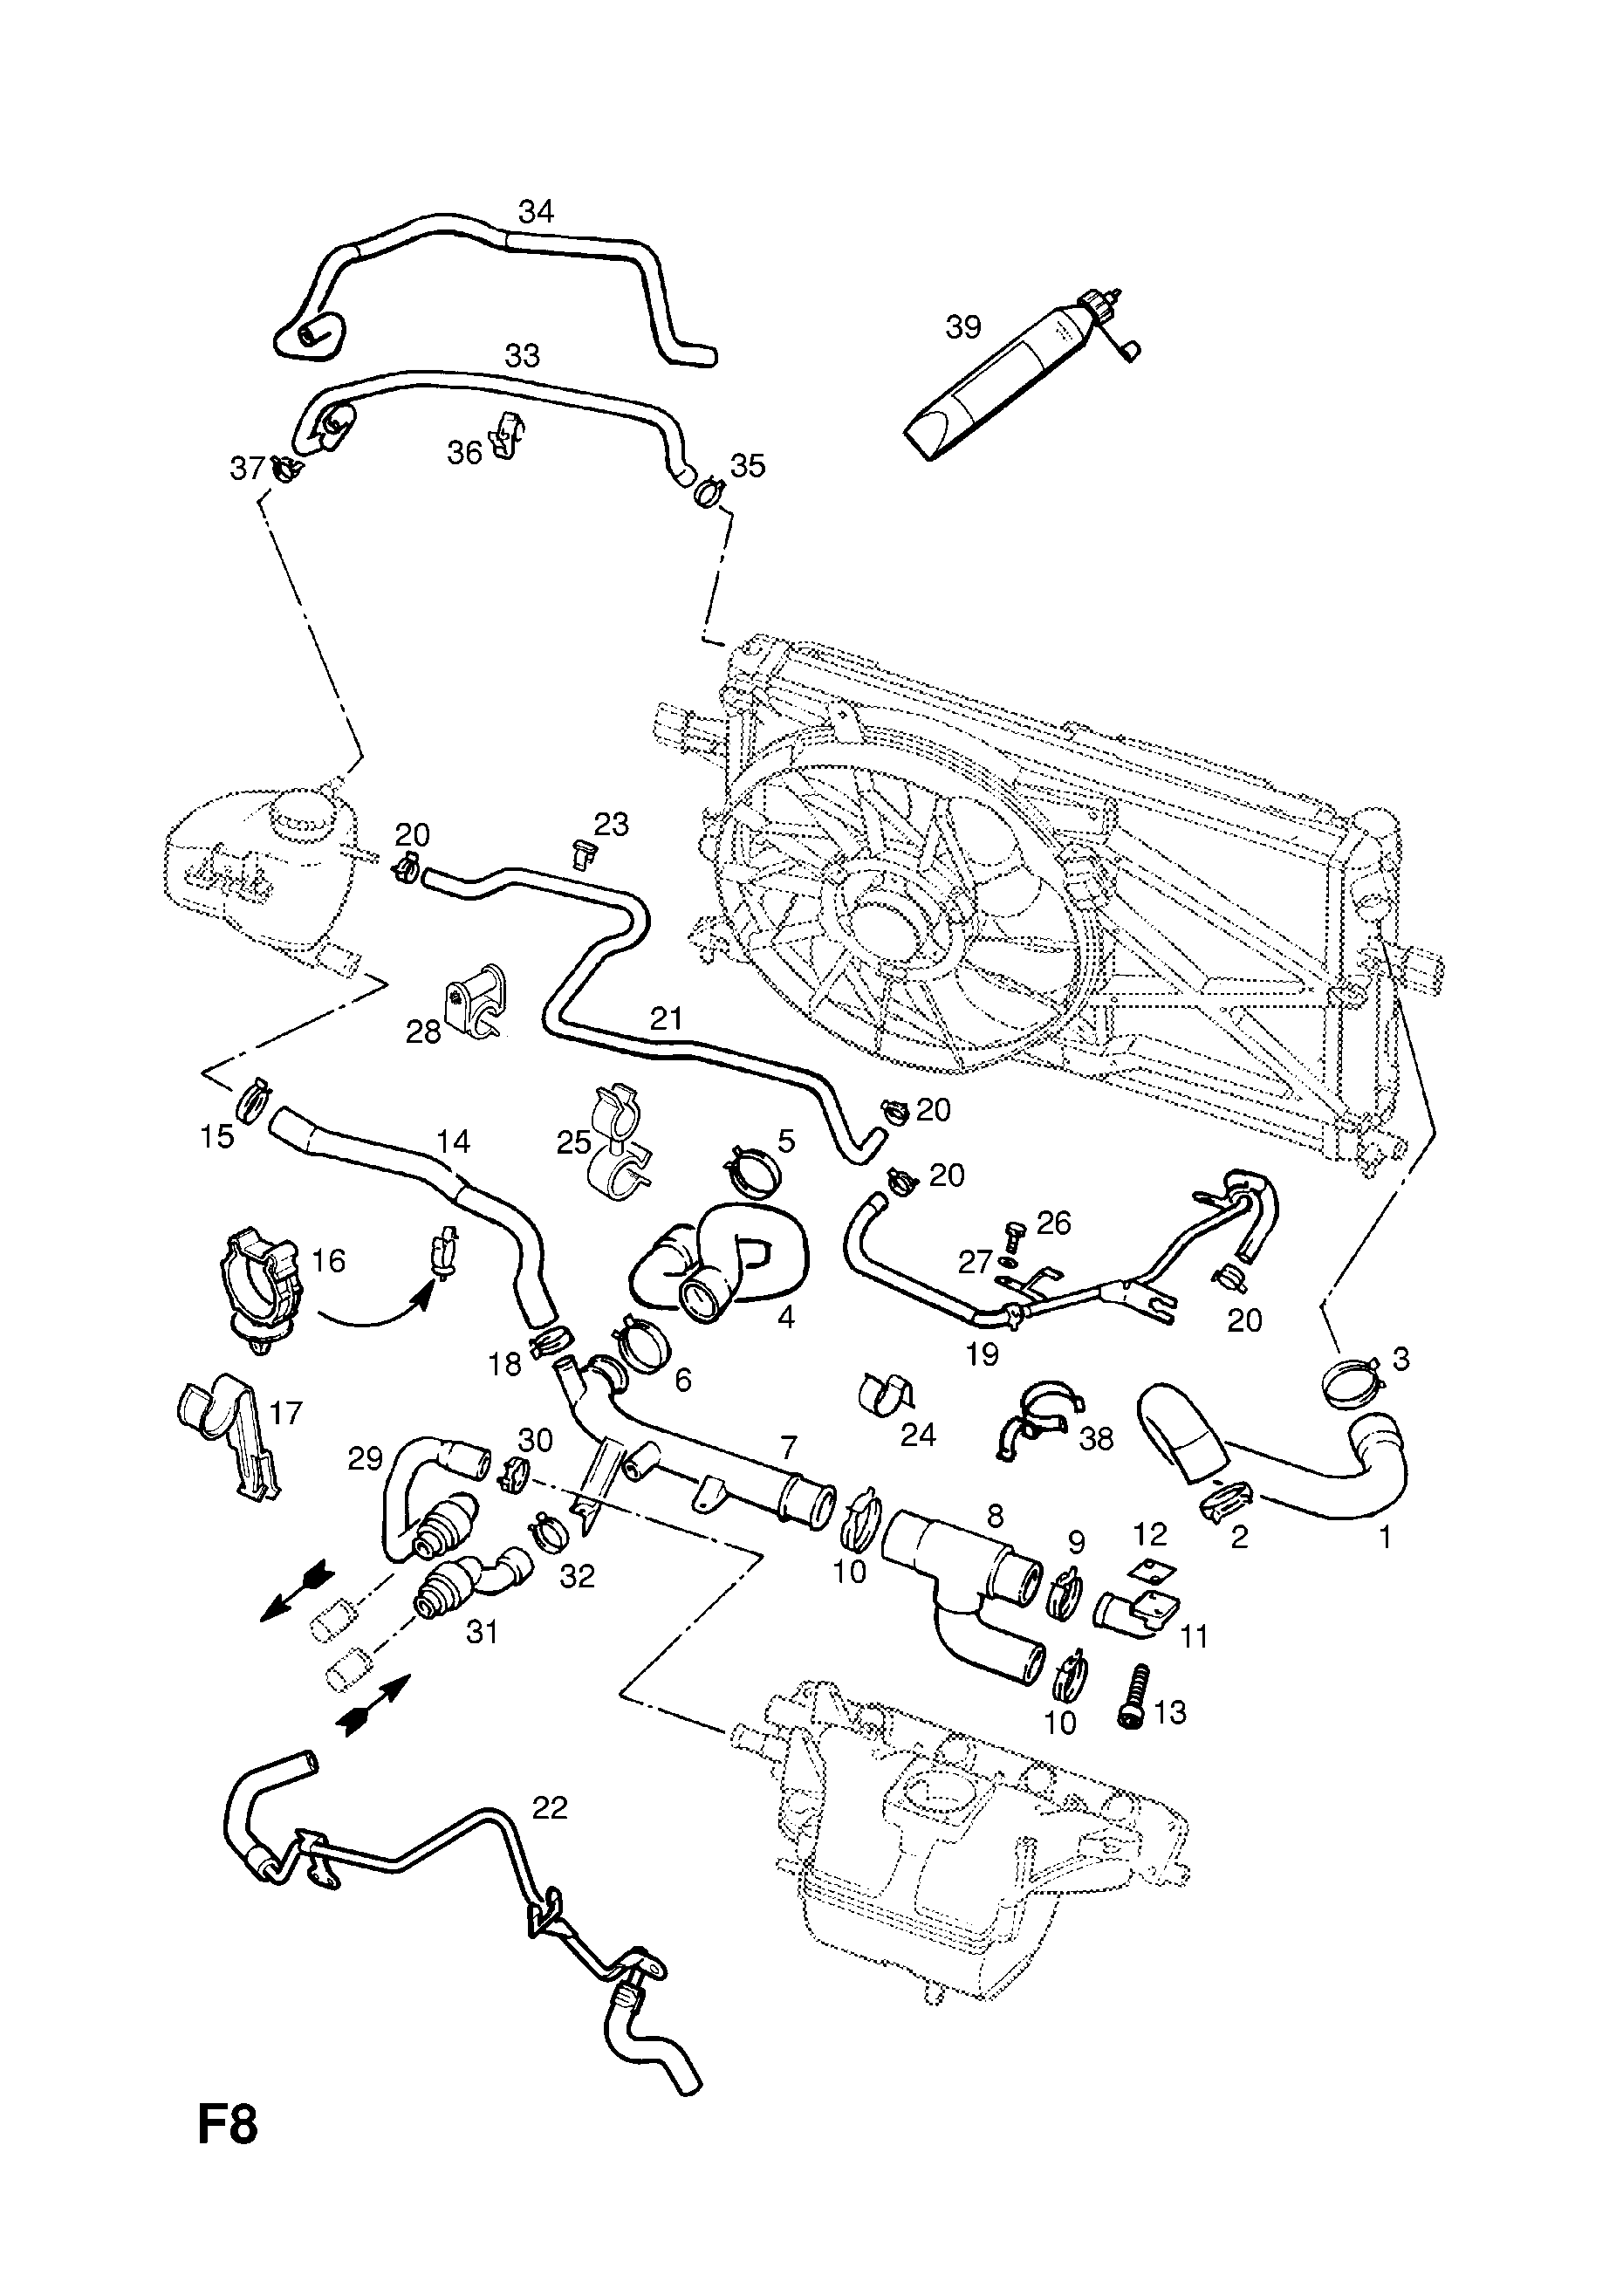 Opel Astra G 1998 2010 F Cooling 48z18xell97 Engine Central Locking Wiring Diagram List Of Parts